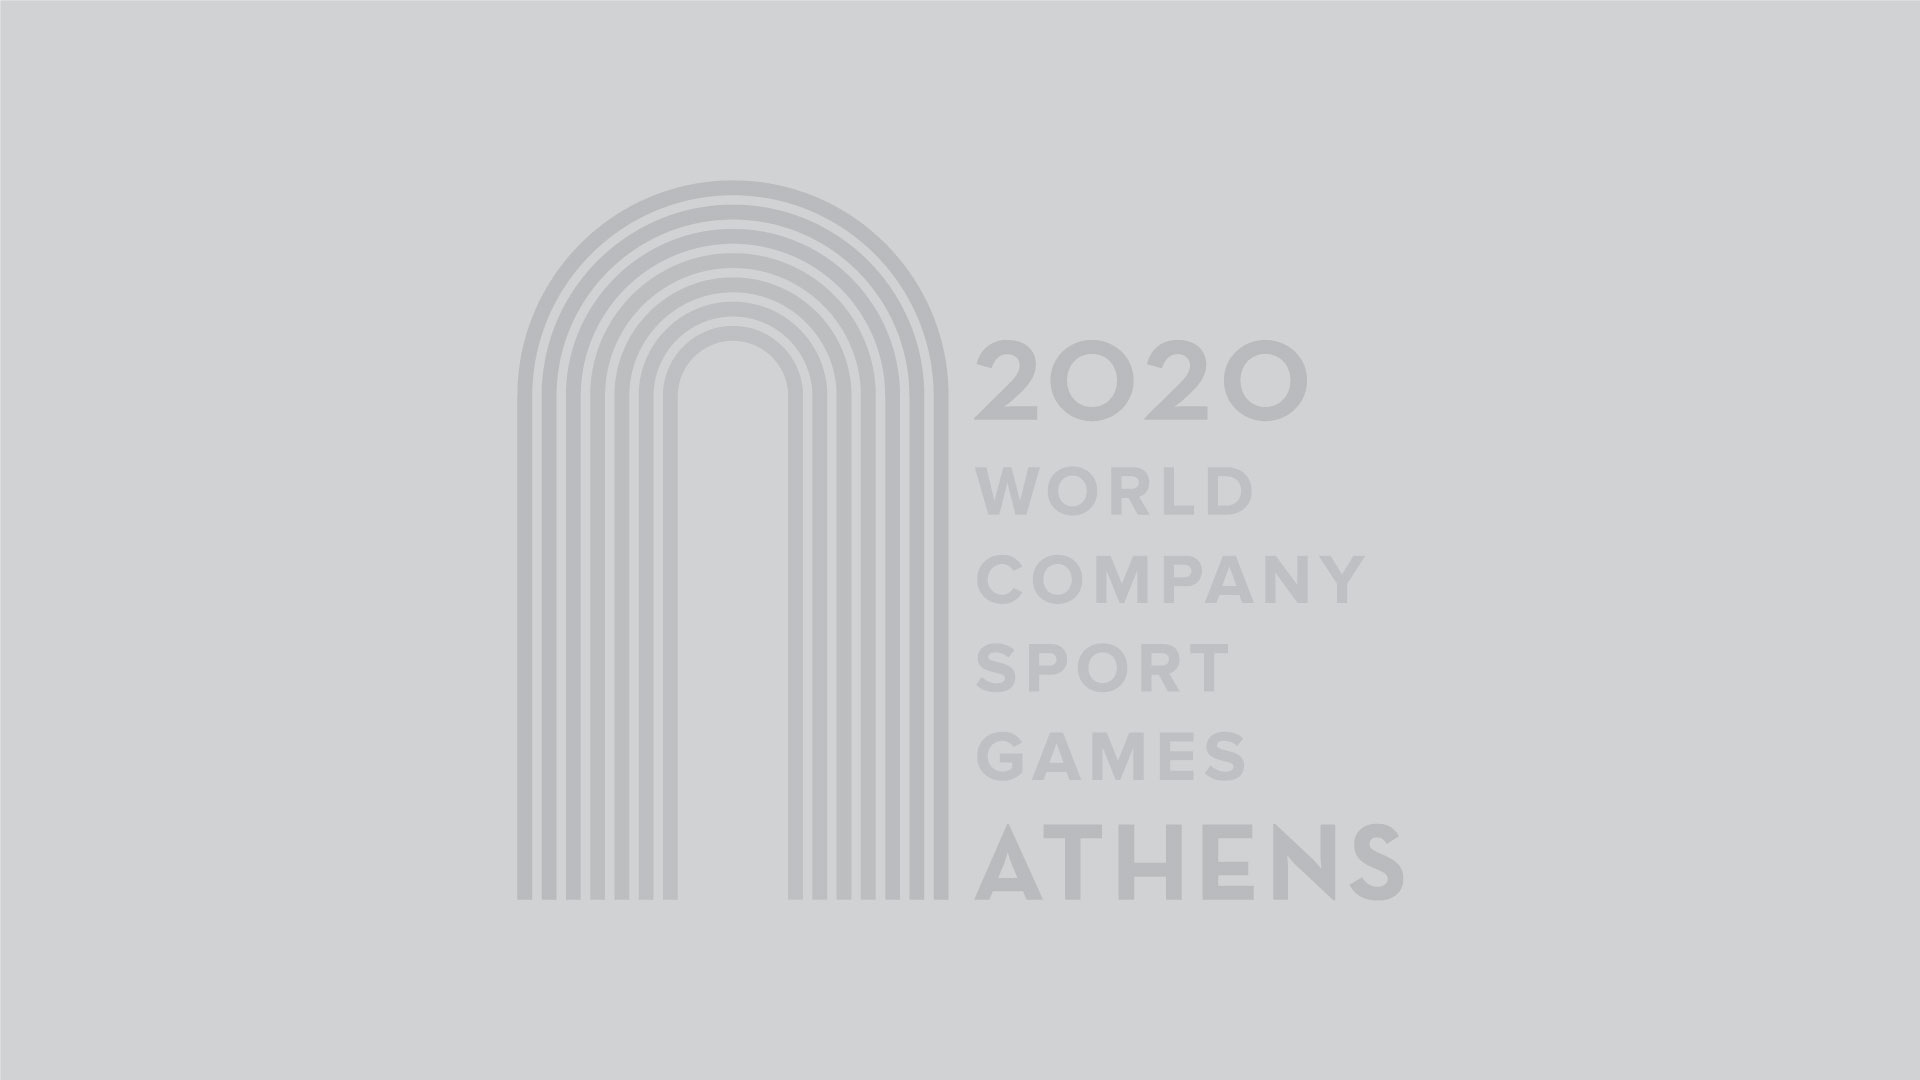 http://www.athens2020.org/sites/default/files/revslider/image/wcsg2020.jpg